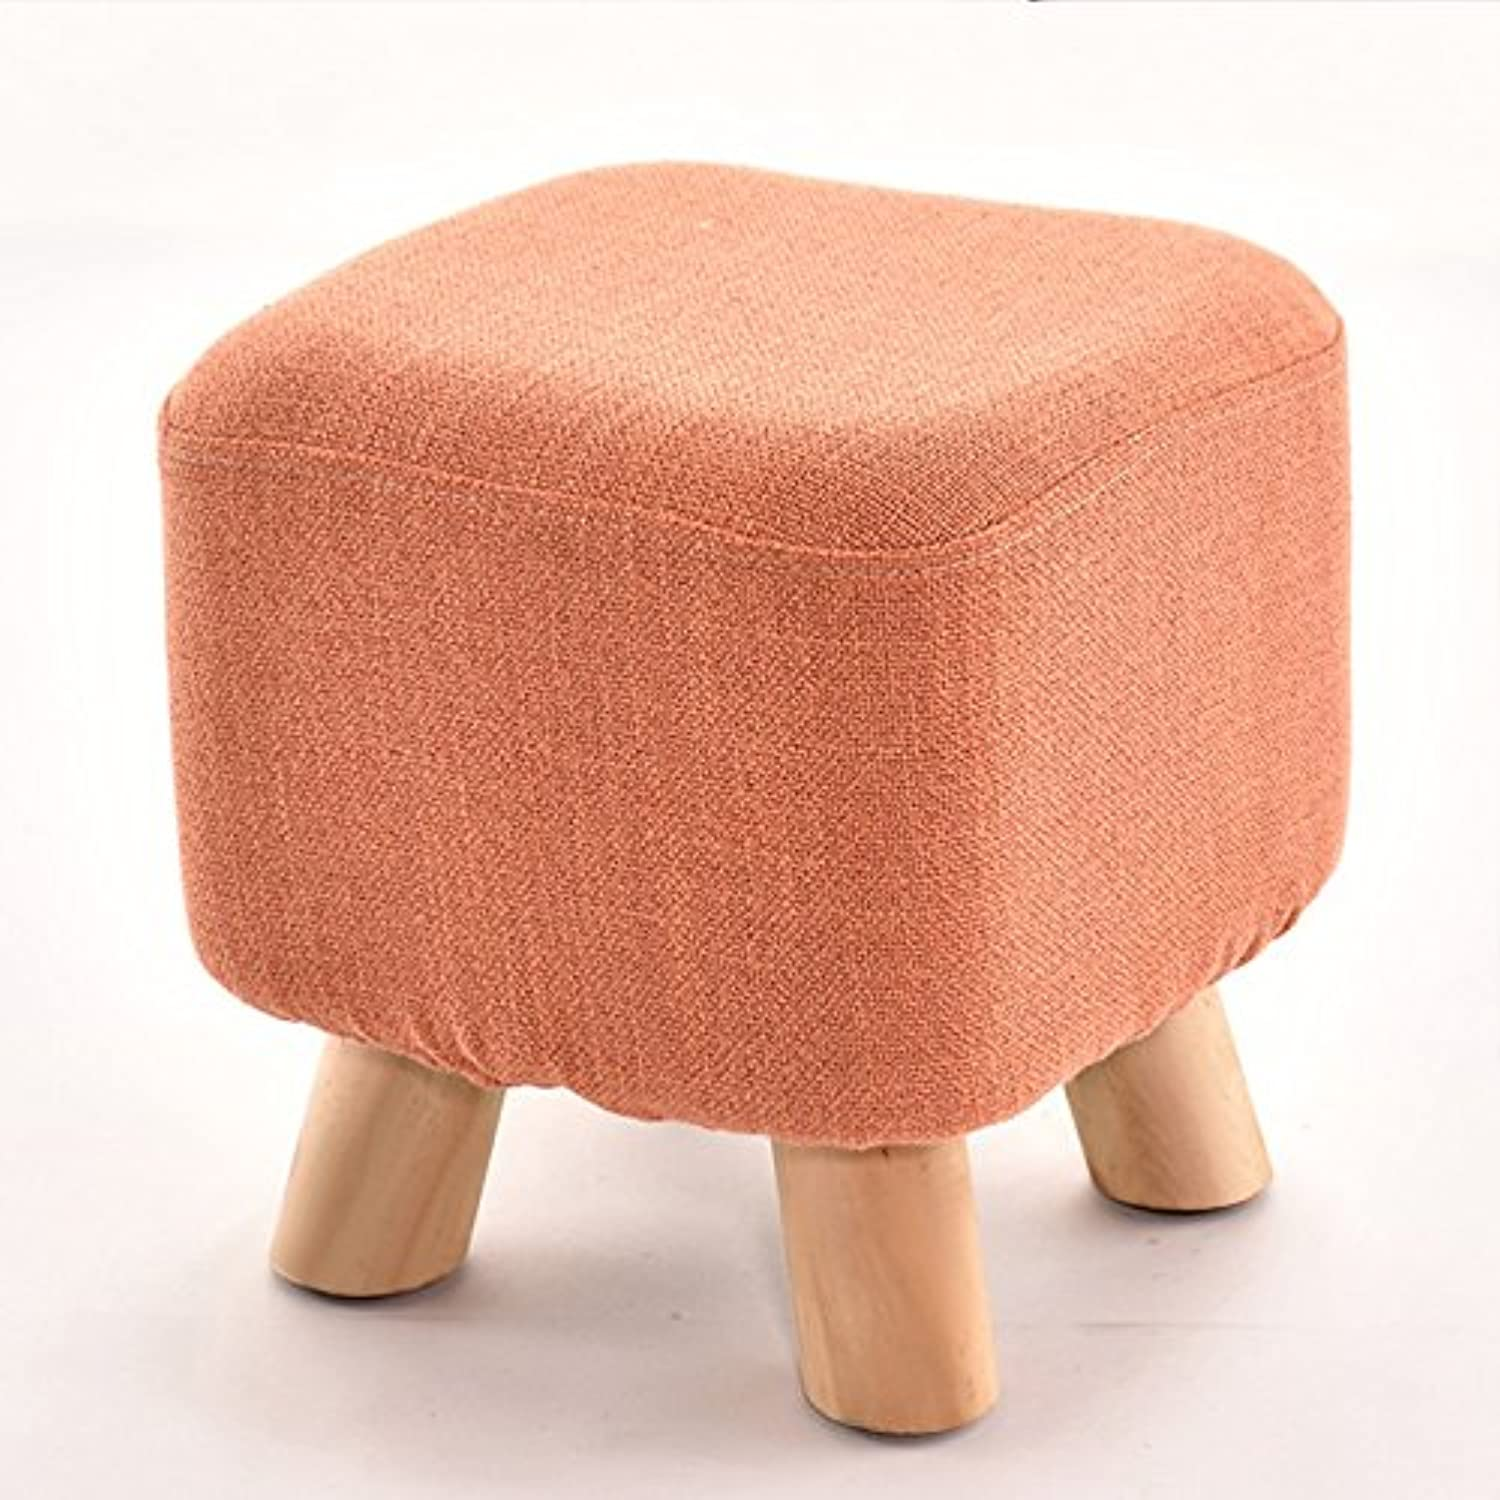 Dana Carrie Stool Wooden Coffee Table on a Low stool Stylish Creative Adult shoes for shoes and The Implementation of The Sofa Bench Benches Home, orange